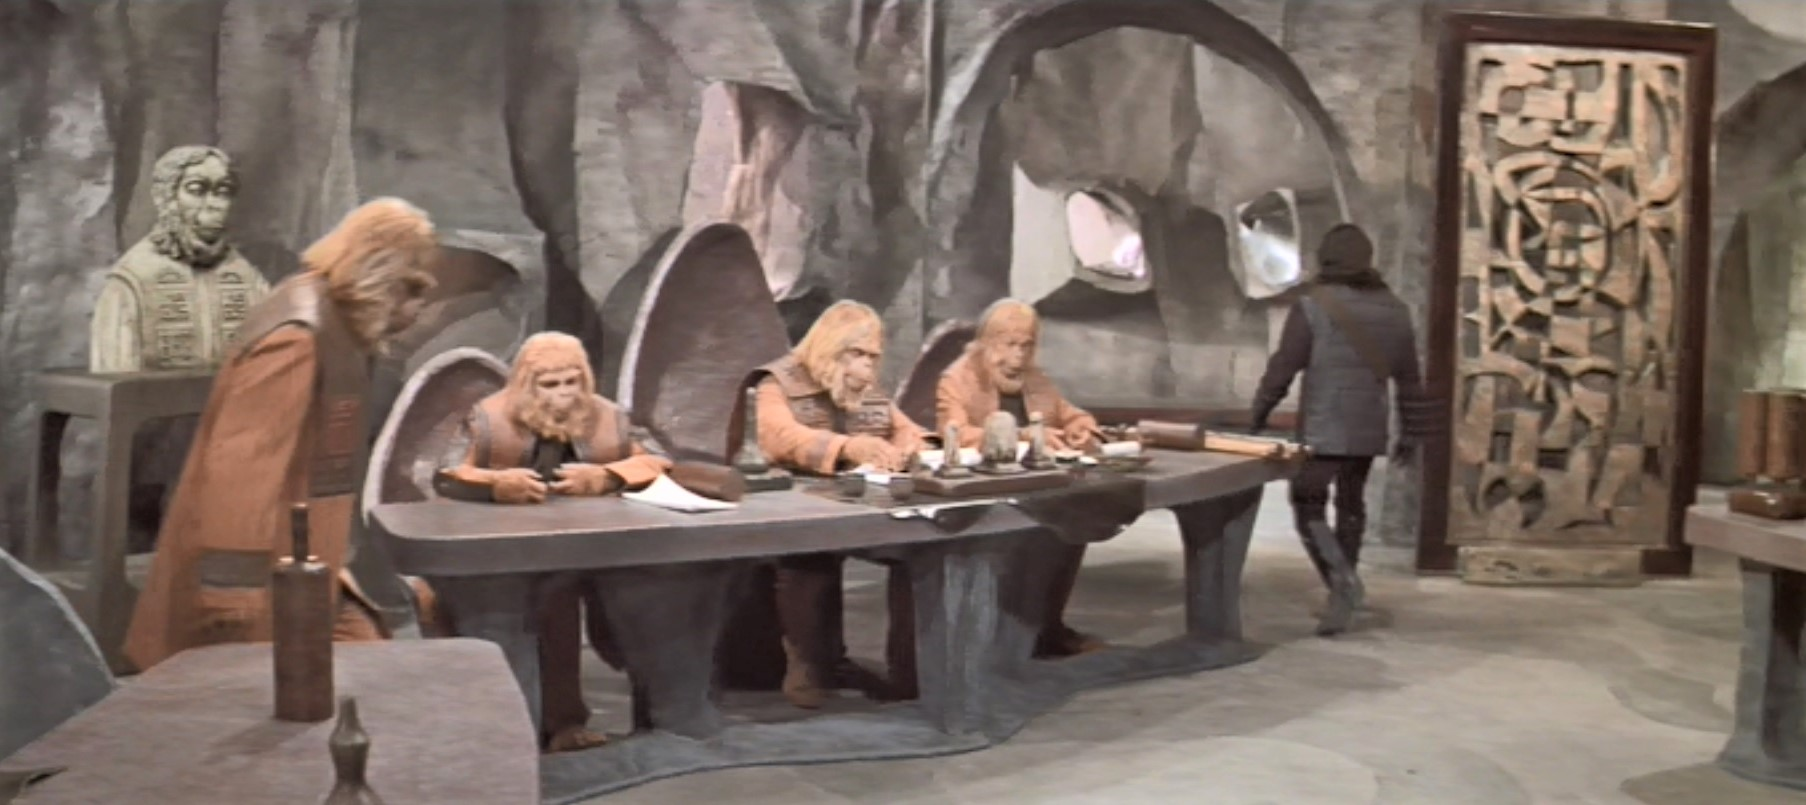 Planet of the Apes 1968 Set Courtroom and Divider 1